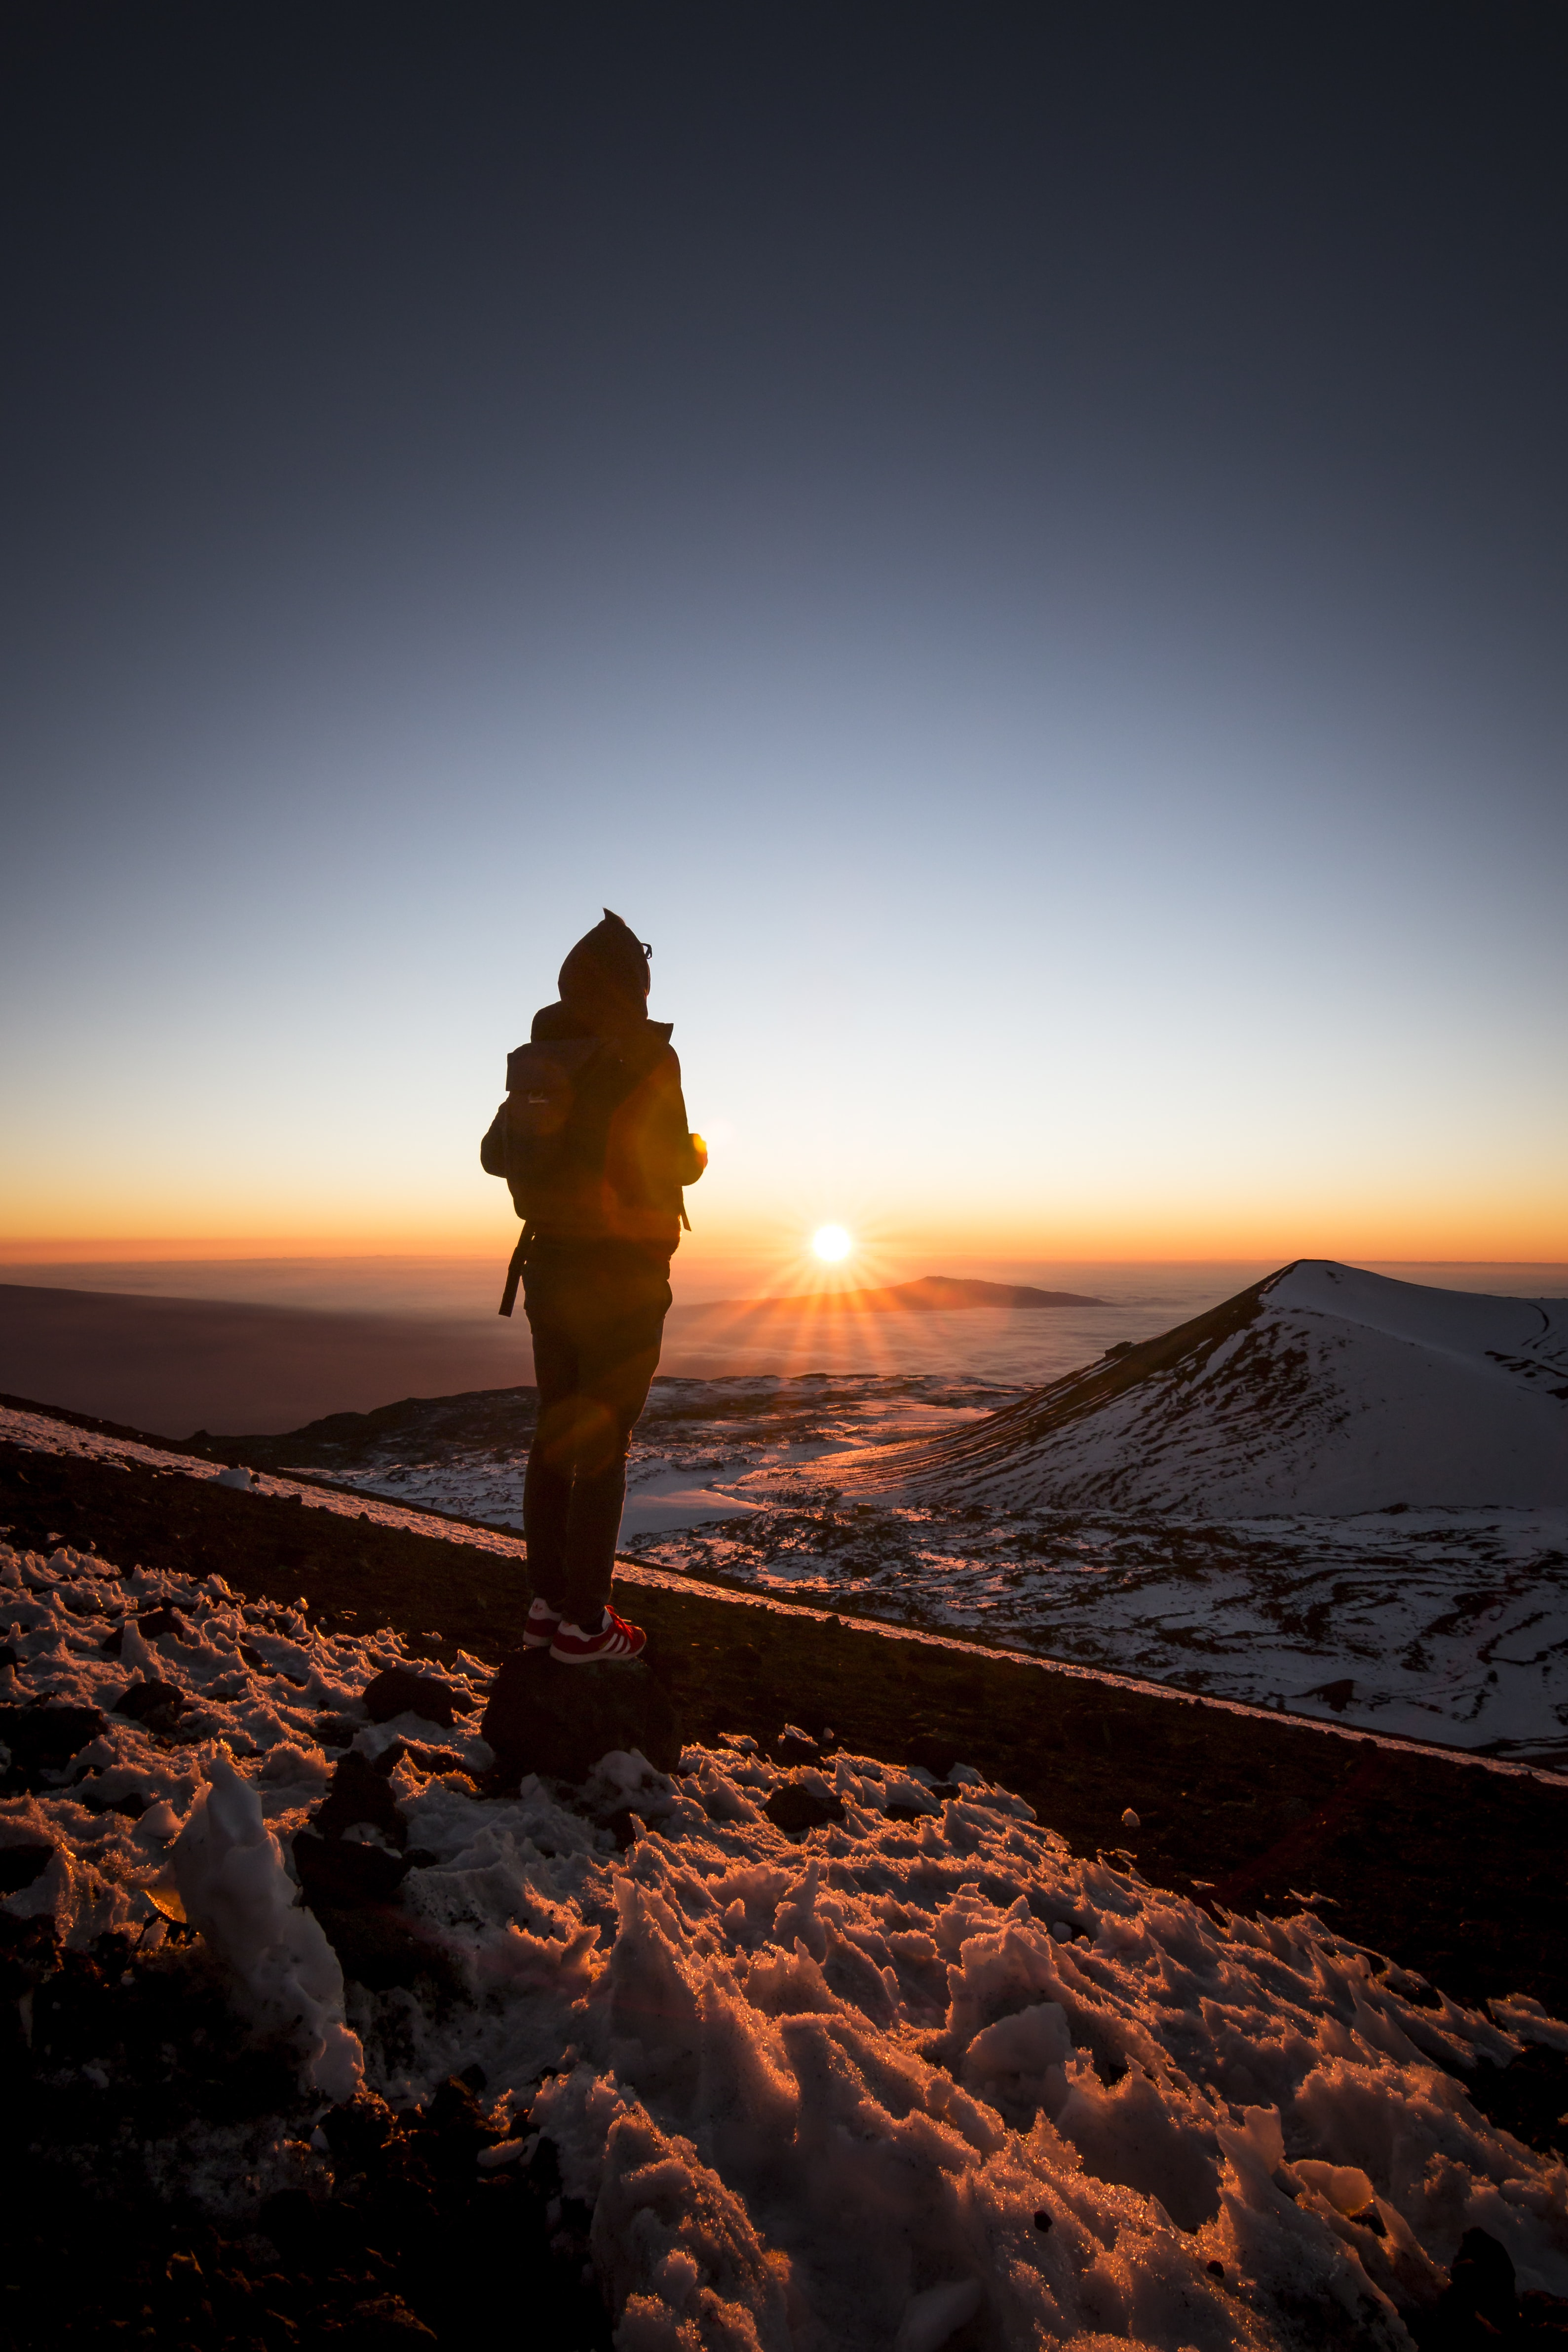 person carrying bag standing on snow coated ground looking at sun